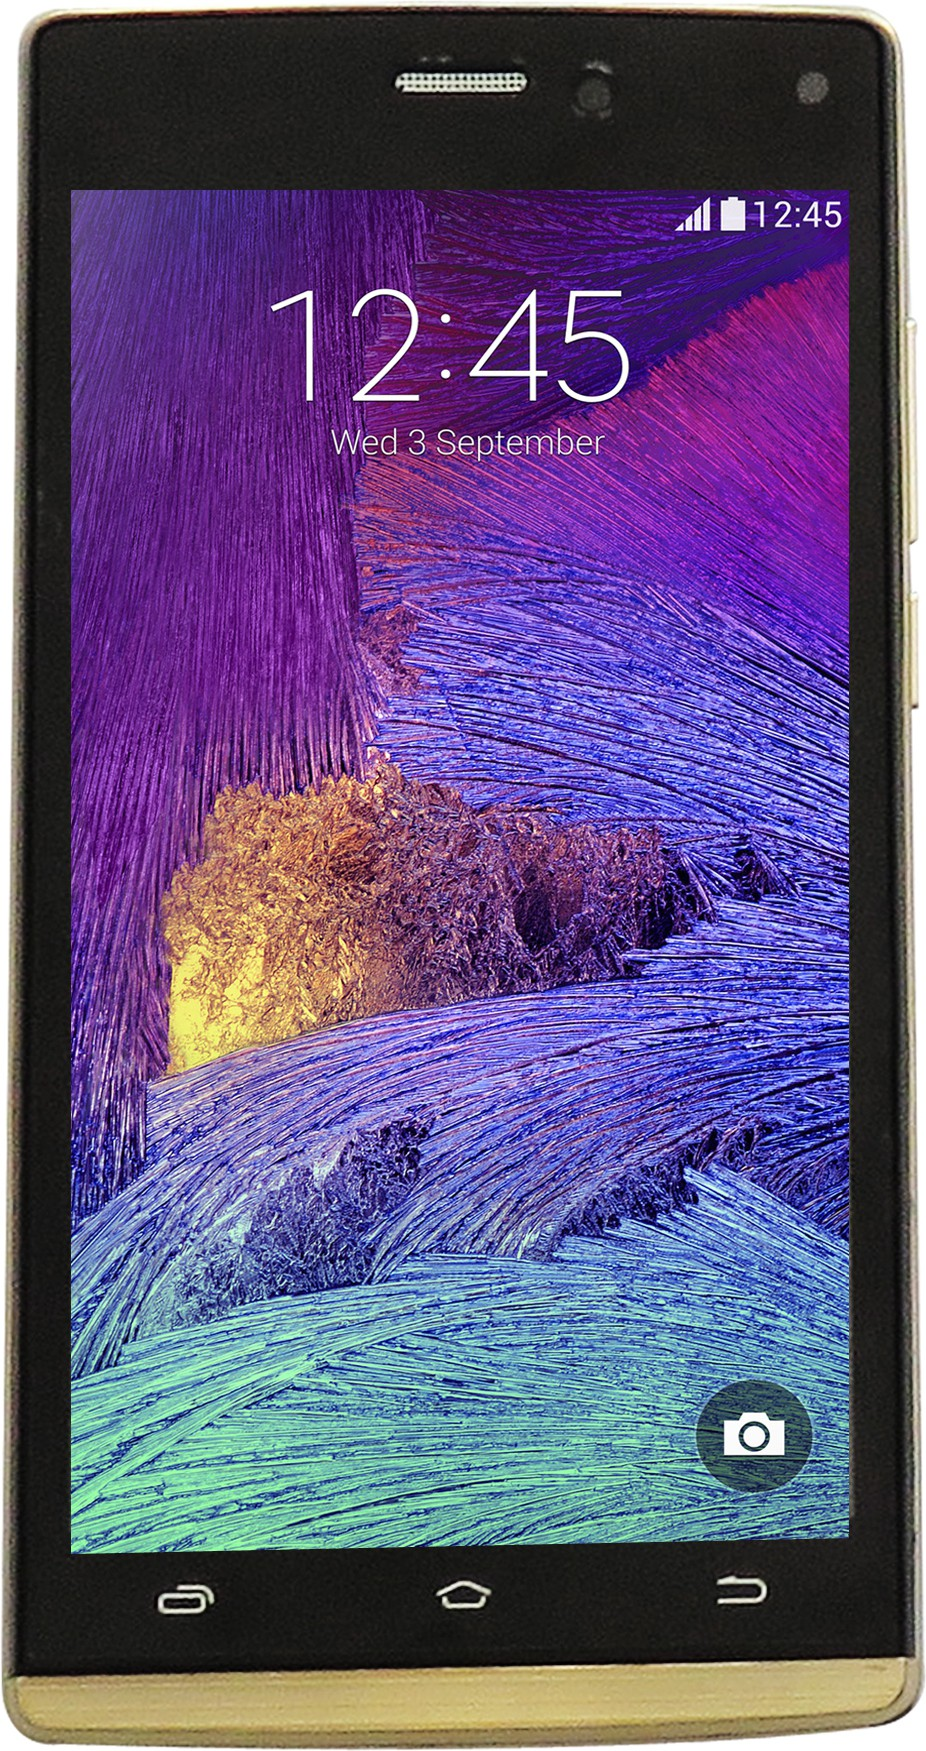 View Spice Xlife Victor5 (Black & Gold, 8 GB)(1 GB RAM) Mobile Price Online(Spice)